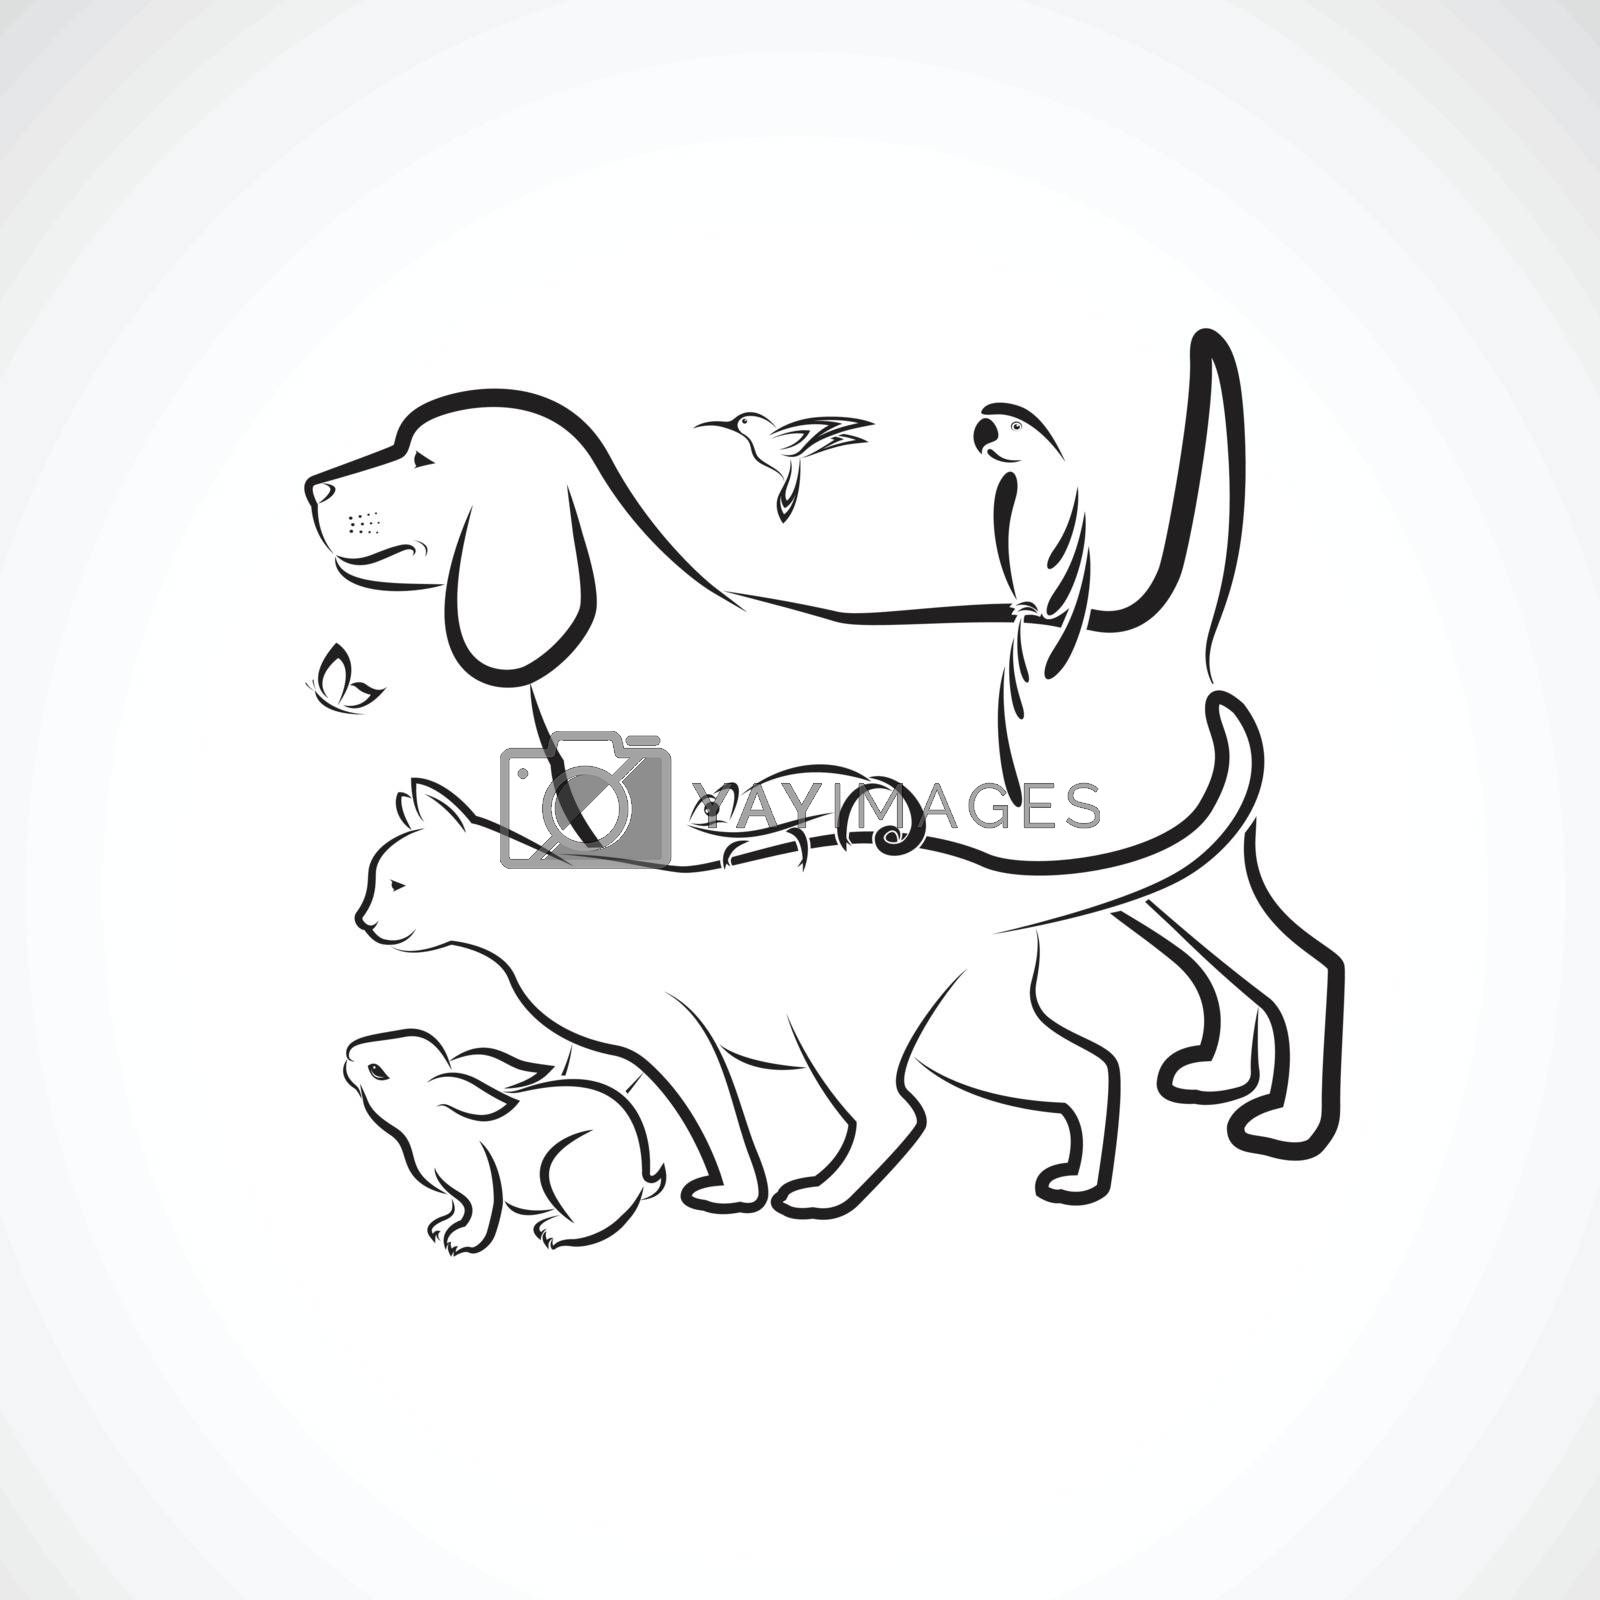 Vector group of pets - Dog, Cat, Parrot, Rabbit, Butterfly, Hummingbird,  Chameleon, isolated on white background. Pet. Animals. Easy editable layered vector illustration. Pet group.